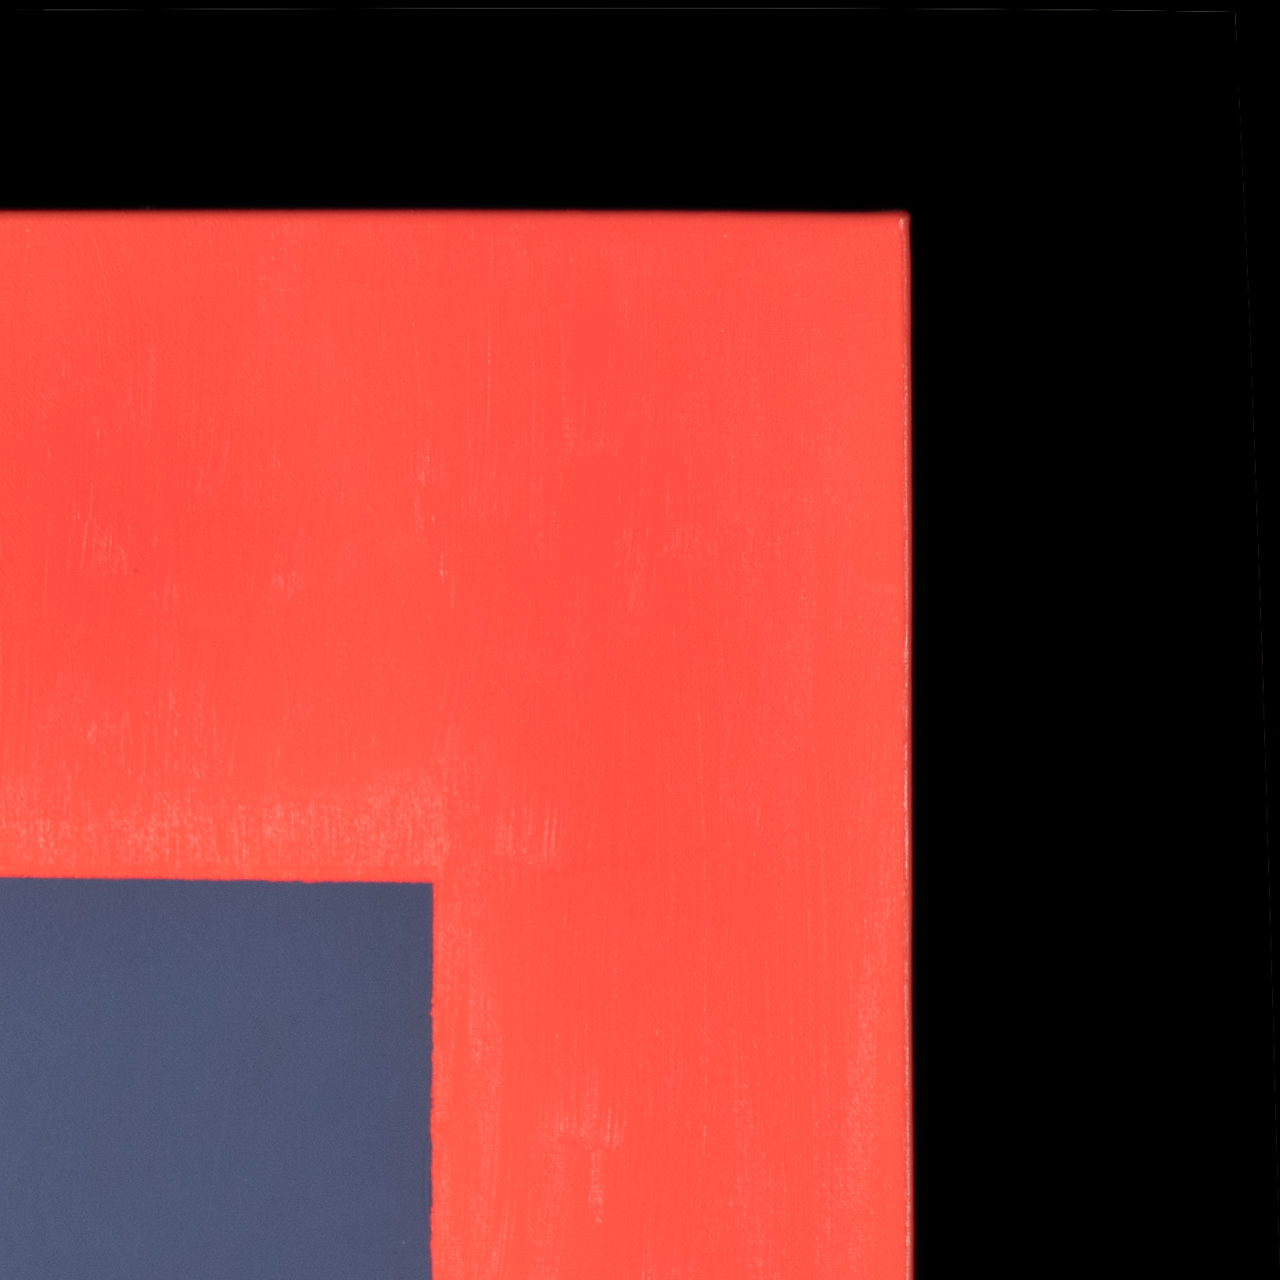 Pair of Contemporary Abstract Paintings Jacob Lloyds - Image 11 of 13